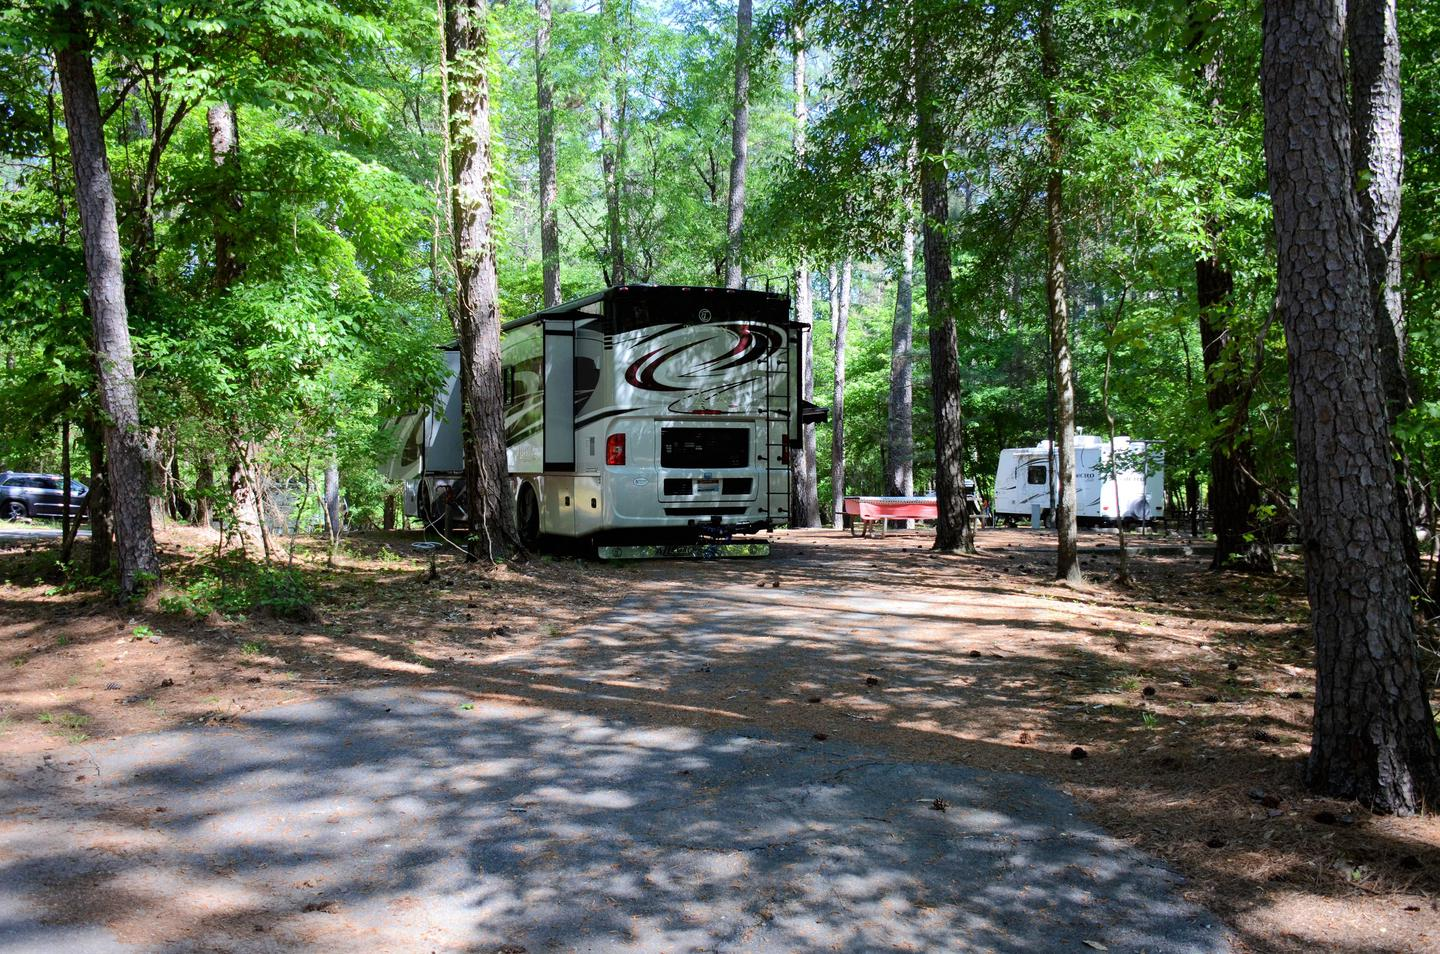 Pull-thru entrance, utilities-side clearance.McKinney Campground, campsite 62.